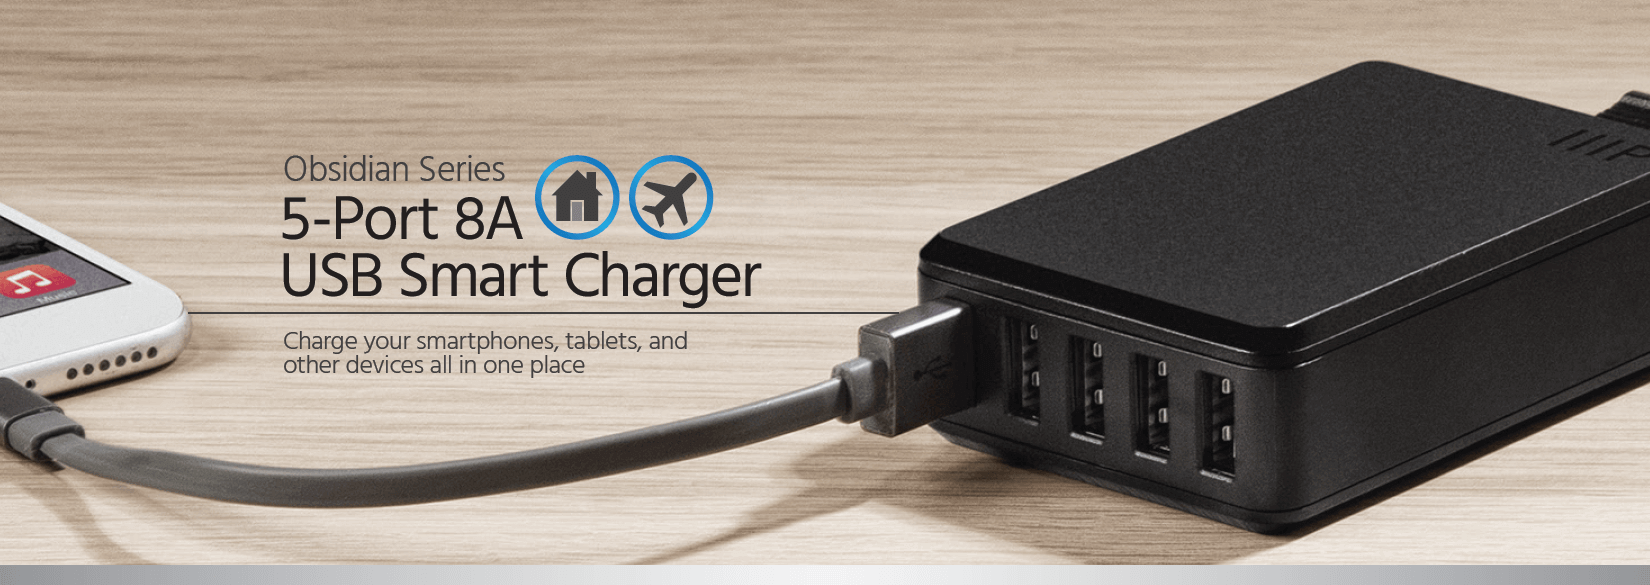 5-Port USB Charger